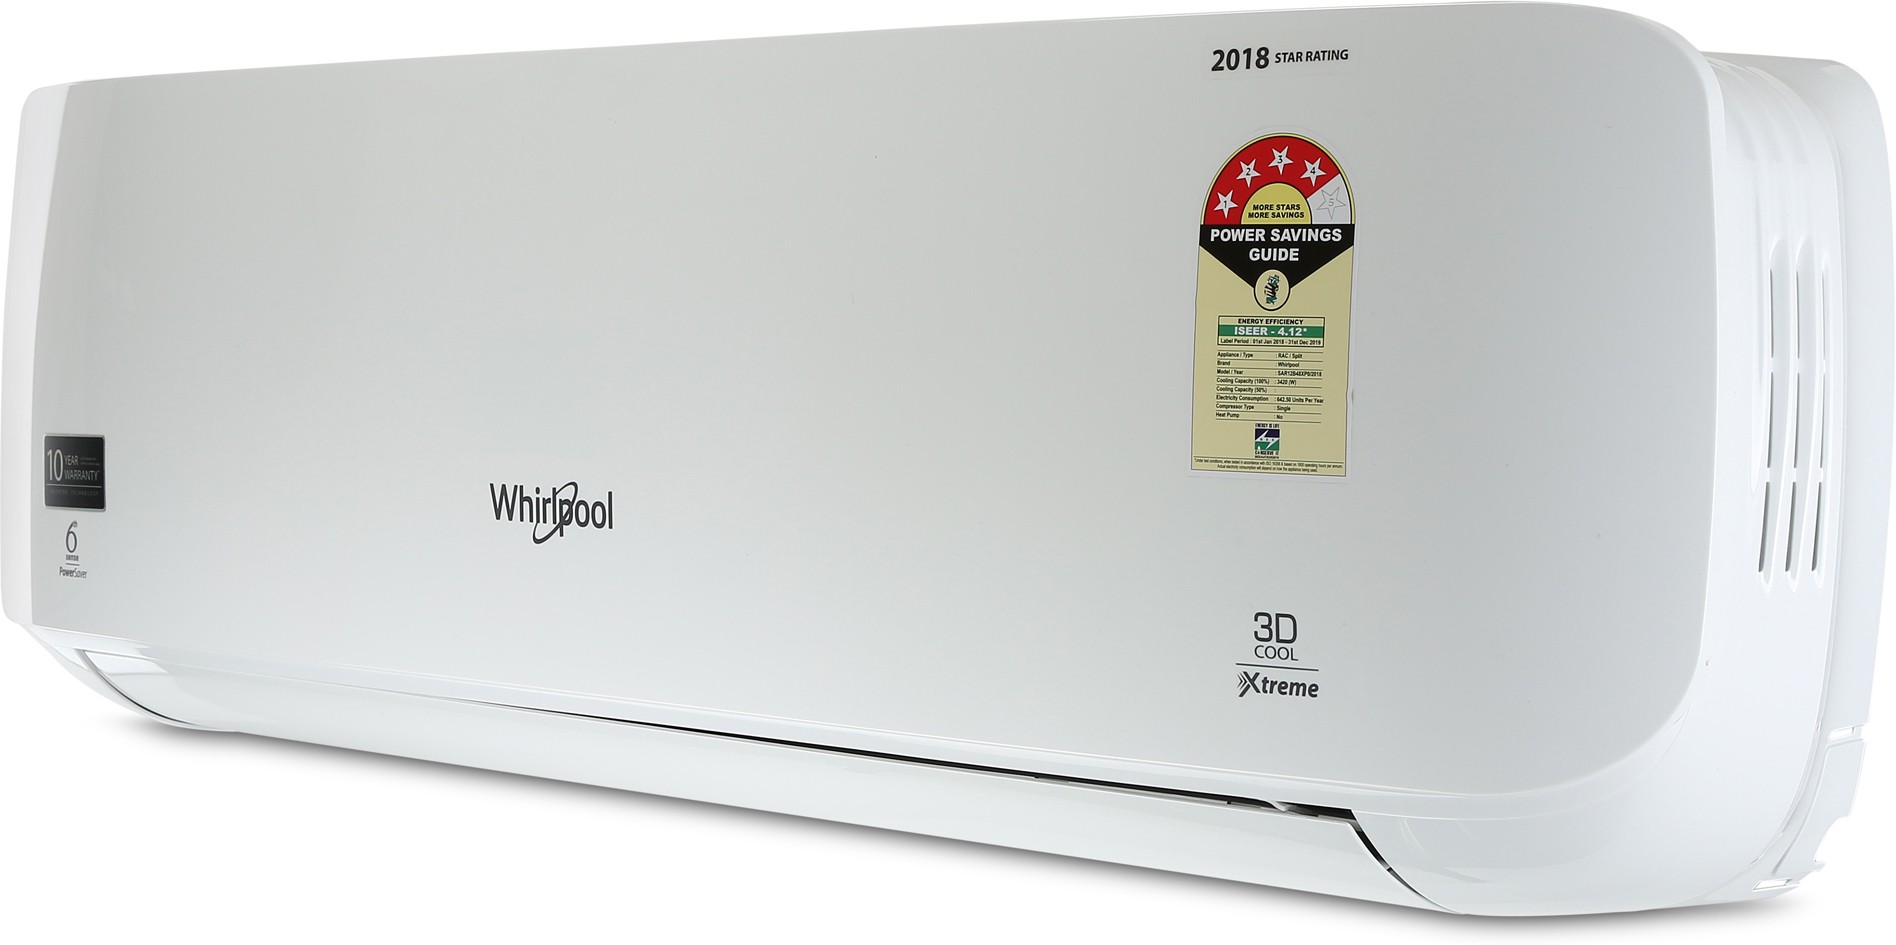 a69963b4b46 Whirlpool 3D COOL XTREME HD 4S 1.5 Ton 4 Star BEE Rating 2018 Split AC image